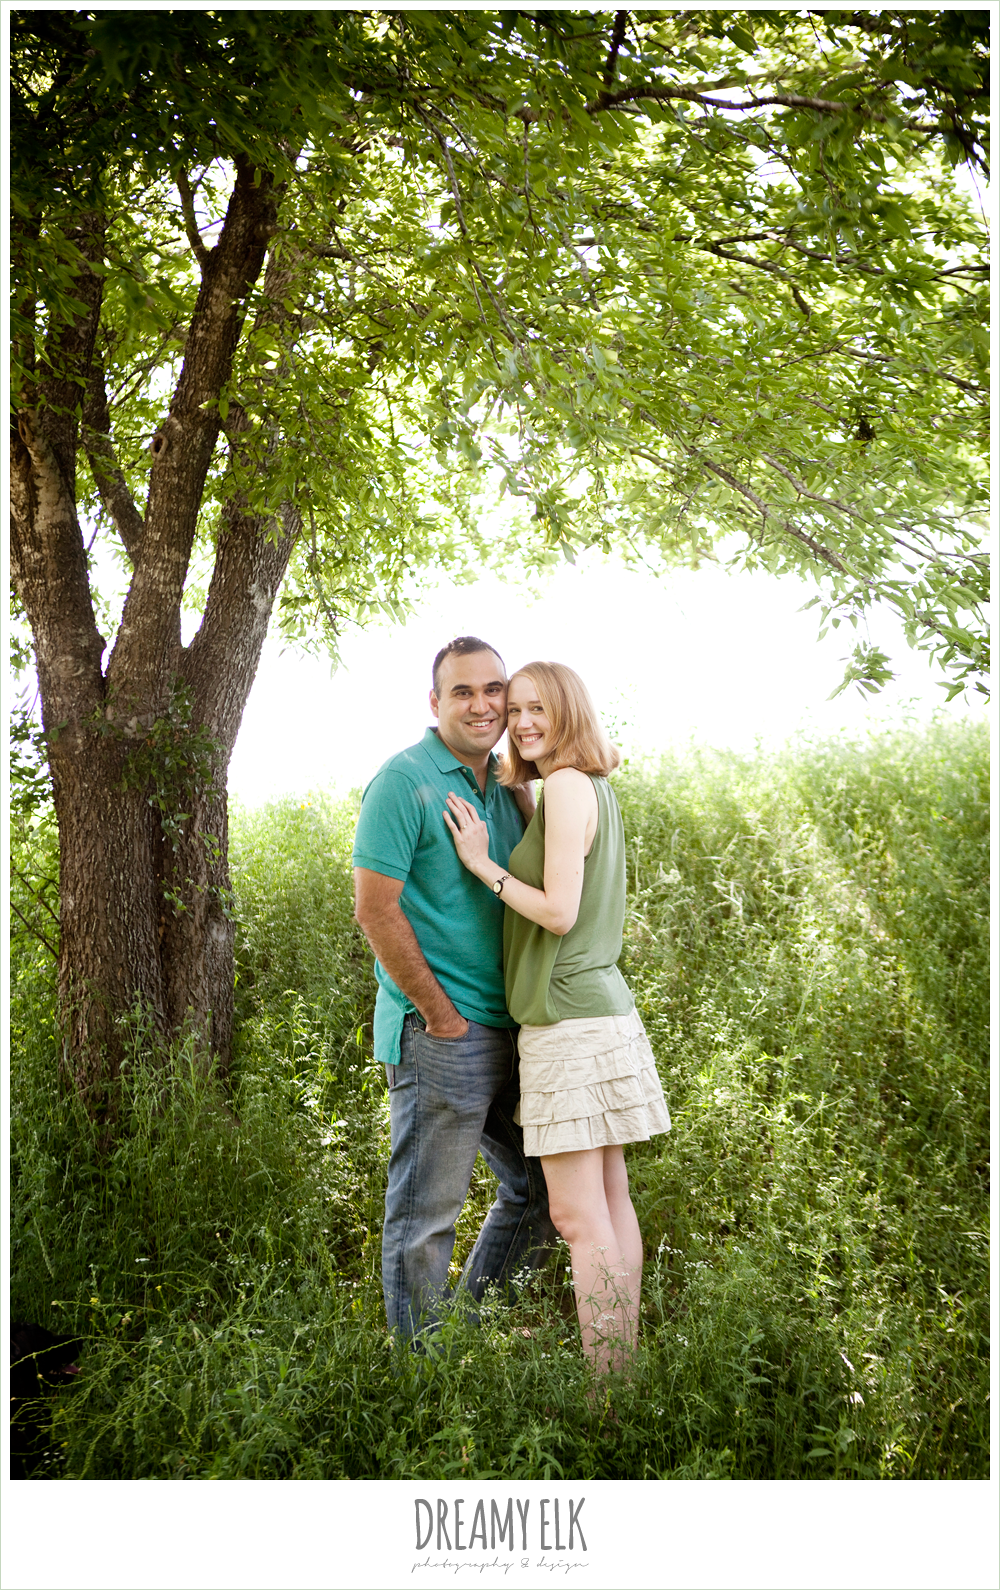 mallory & esteban, engagement photo contest, summertime